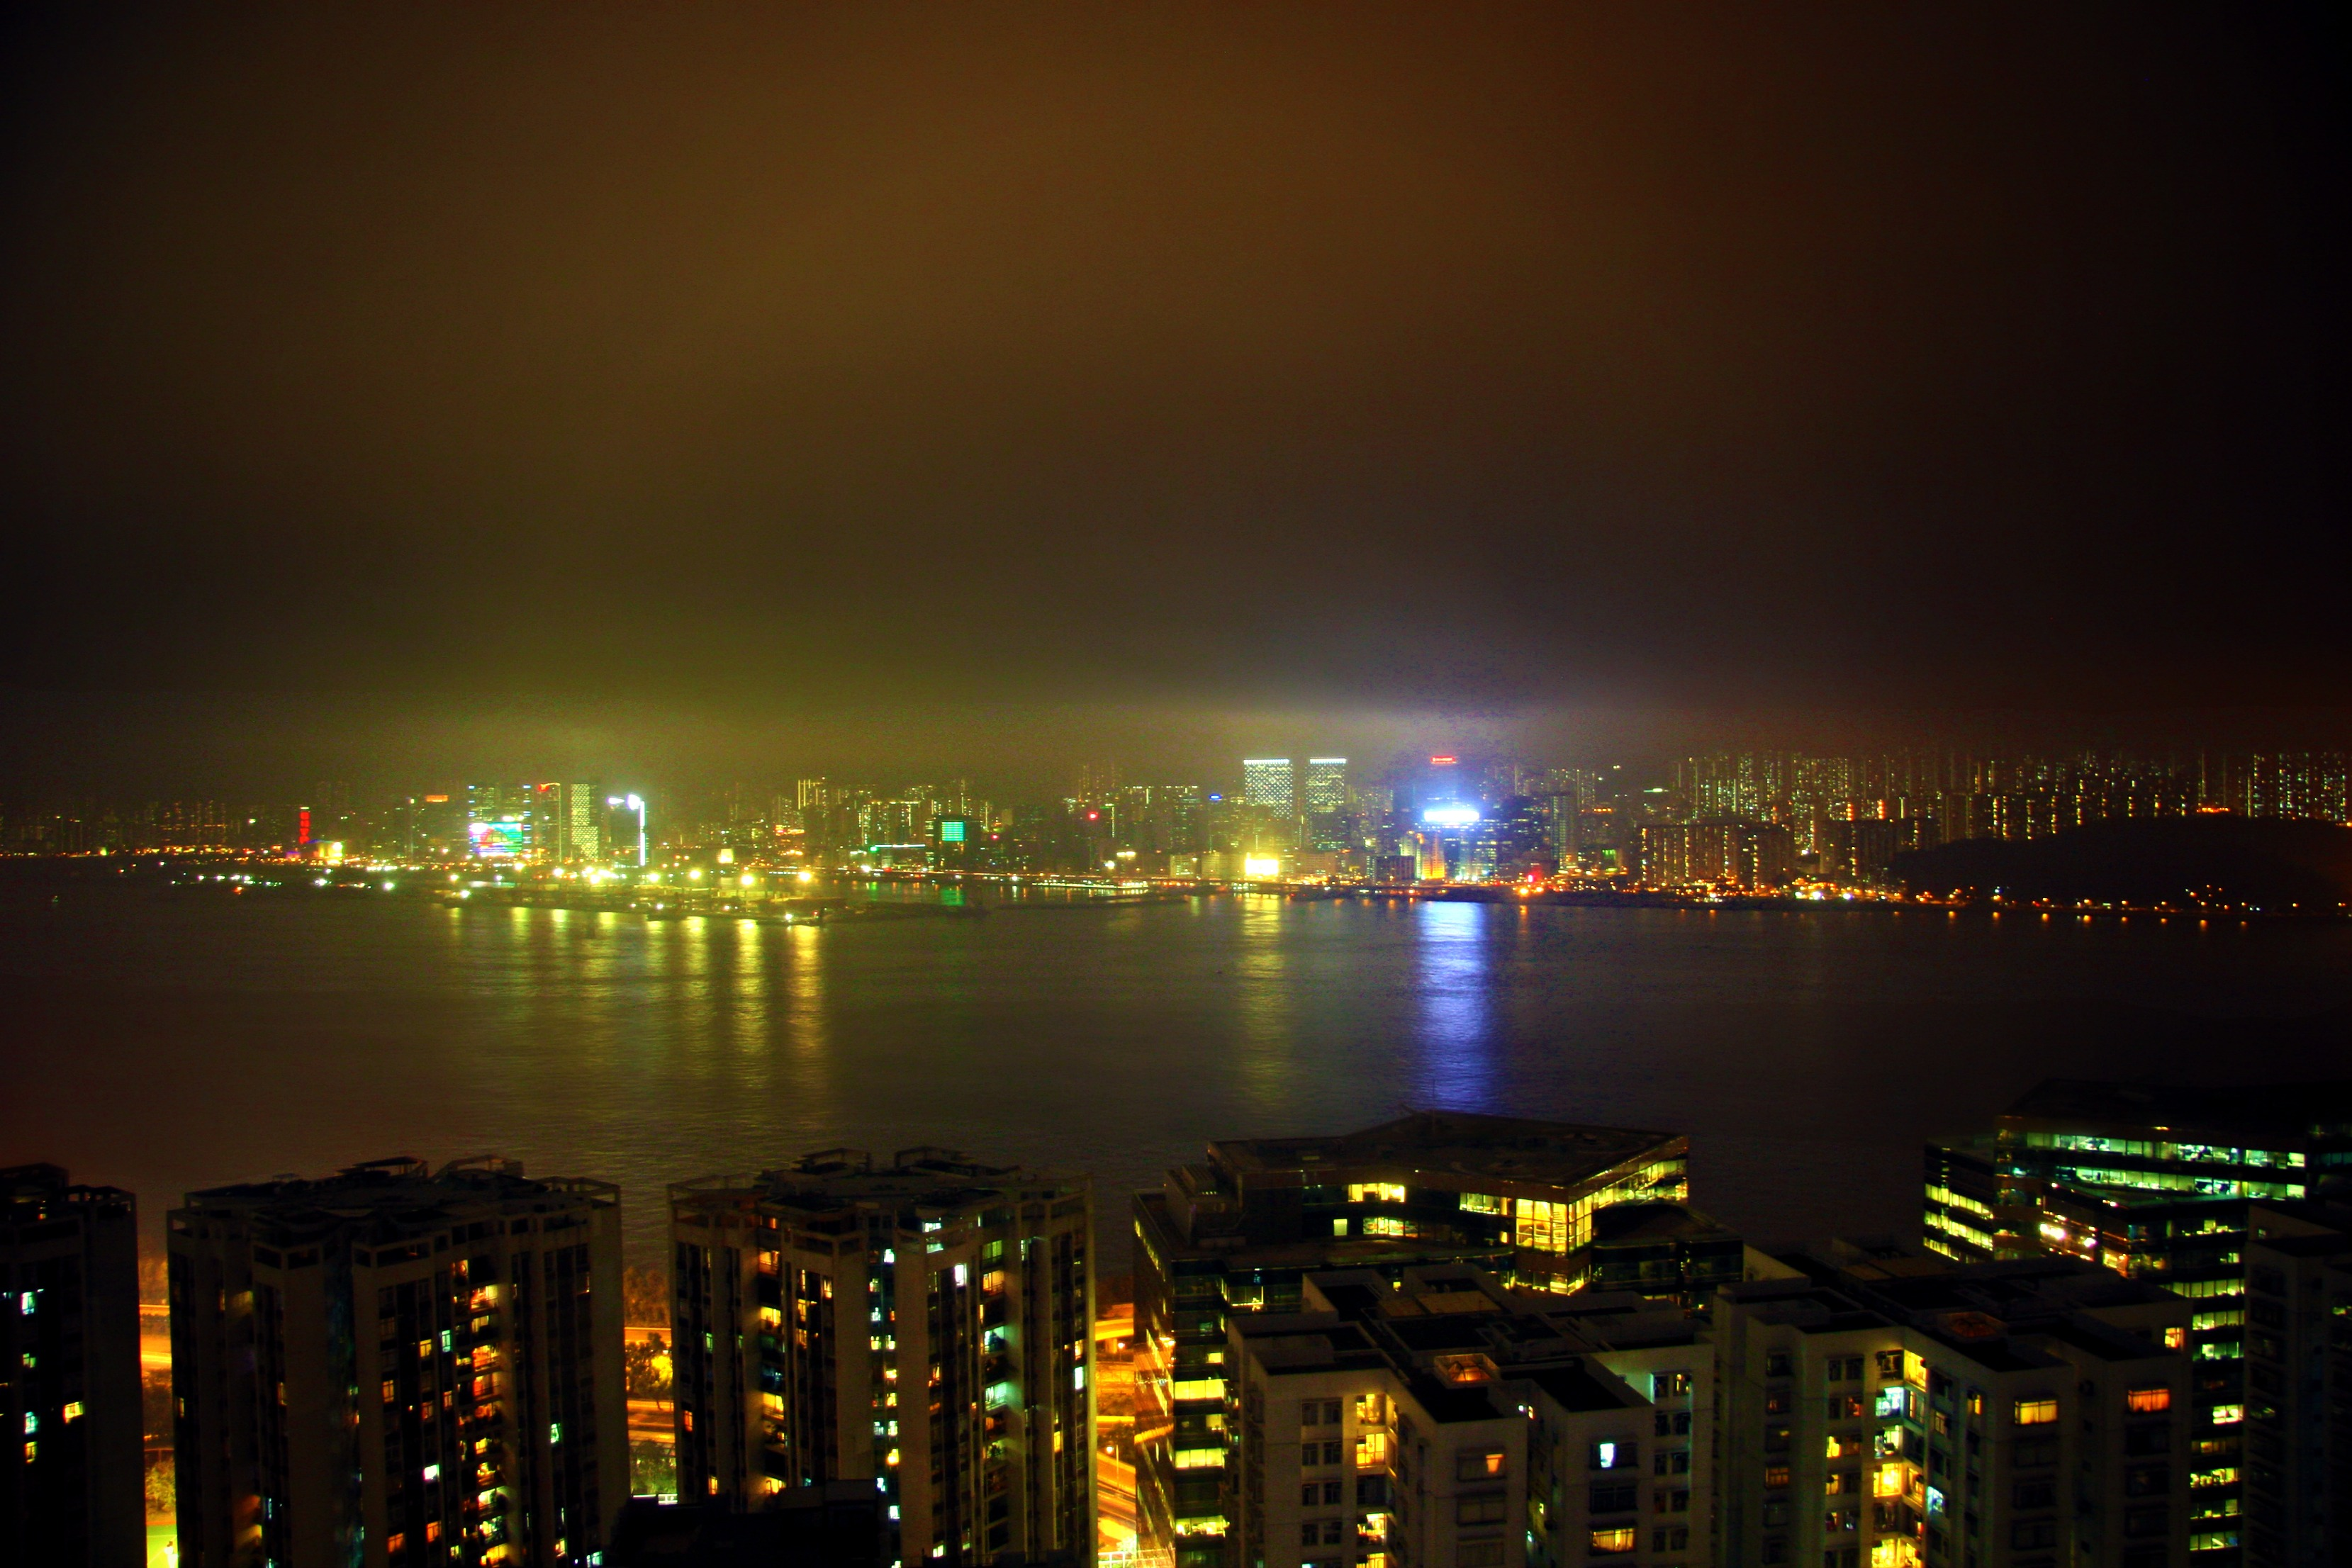 East Hong Kong